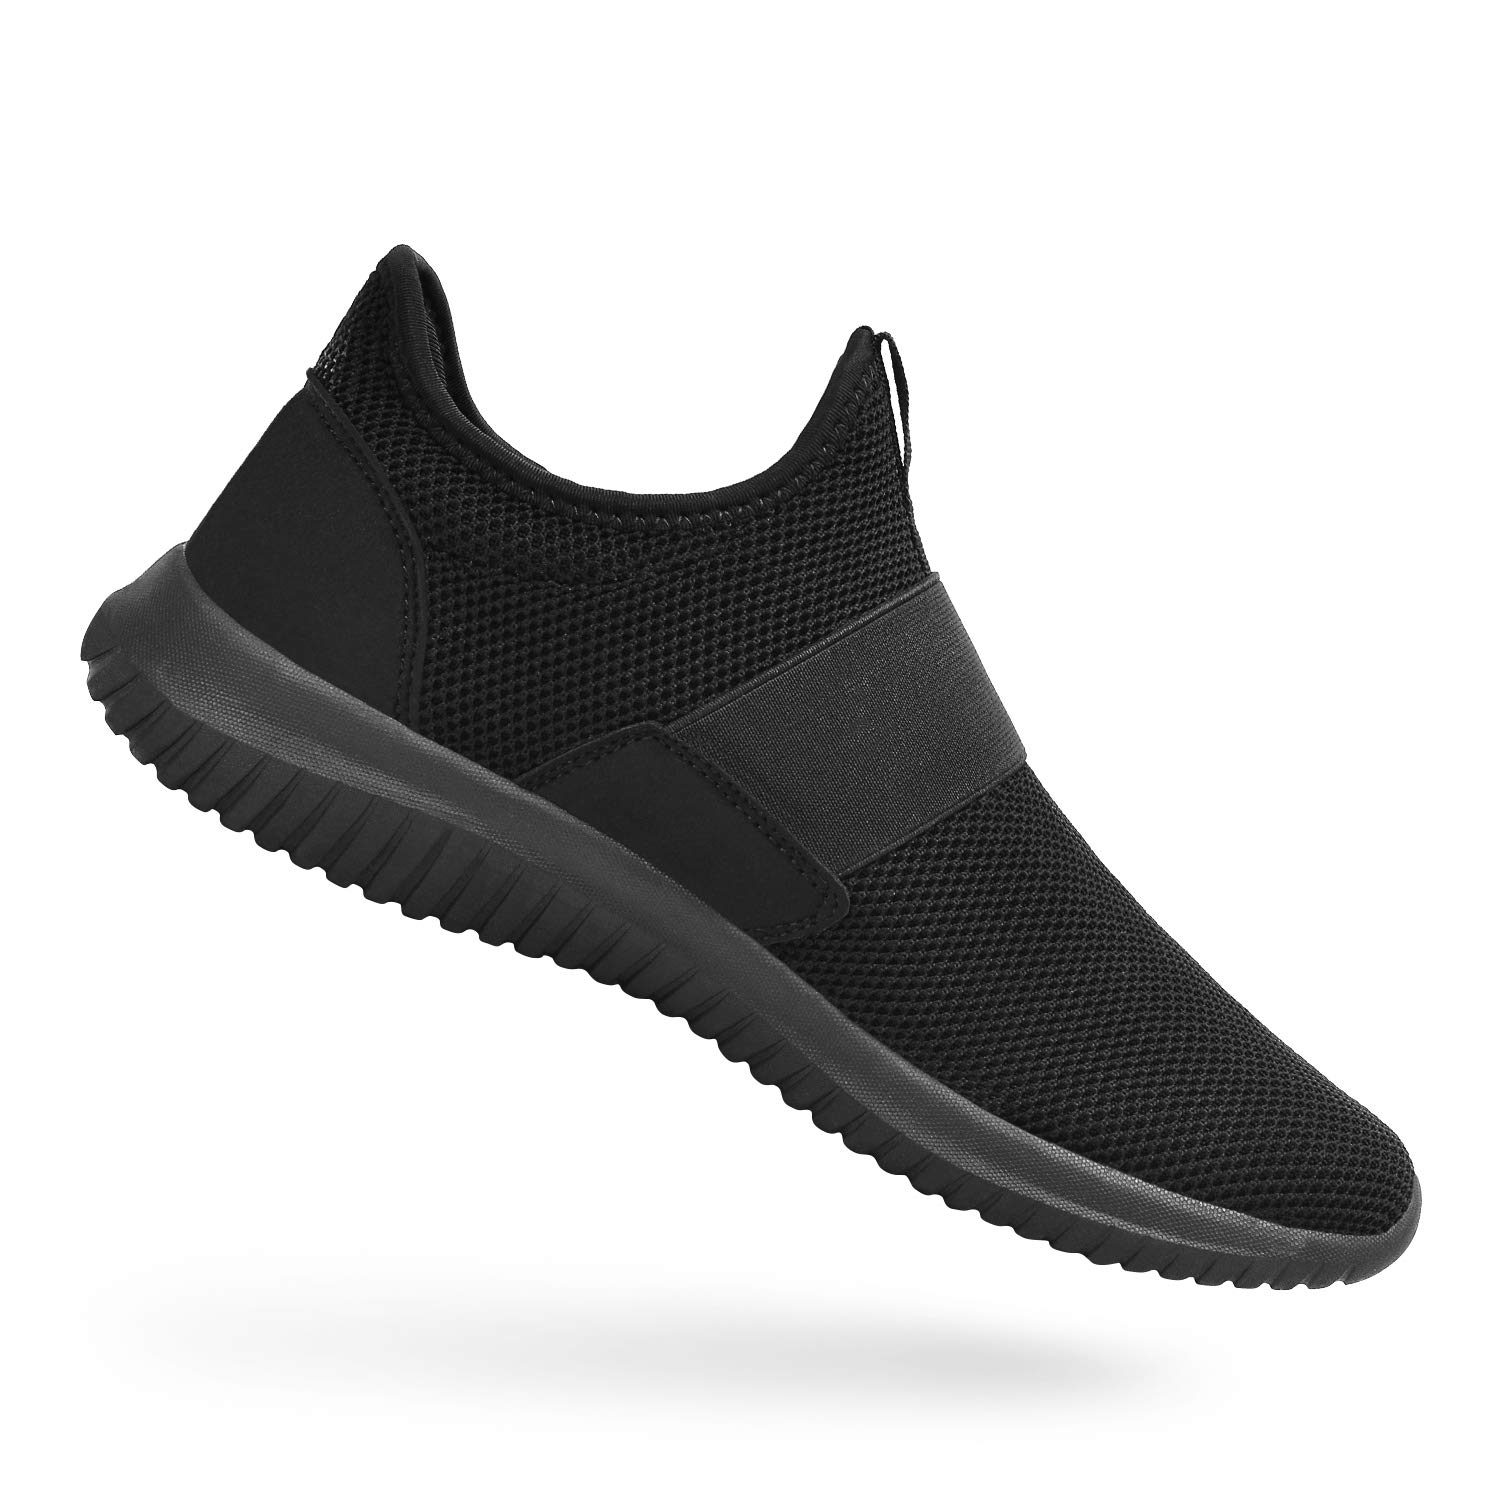 24b2aa7386f8f Feetmat Mens Slip On Sneakers Laceless Lightweight Gym Running Walking Shoes